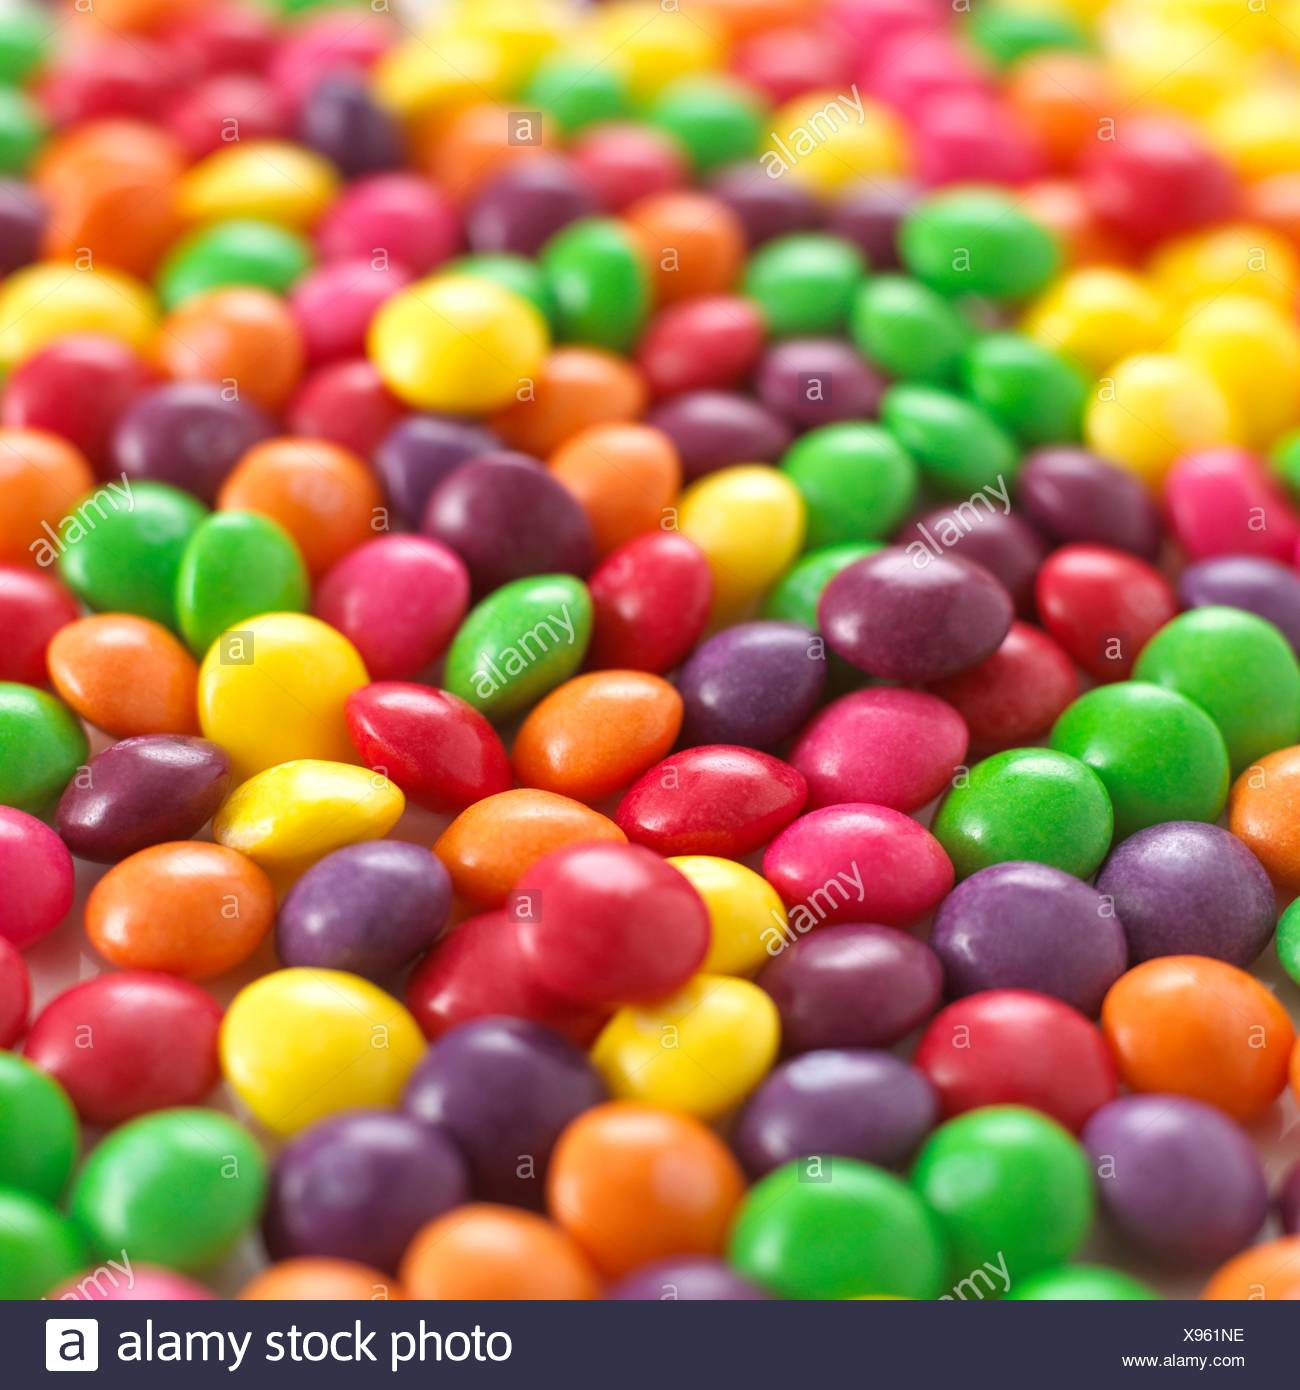 Multicoloured sweets. - Stock Image